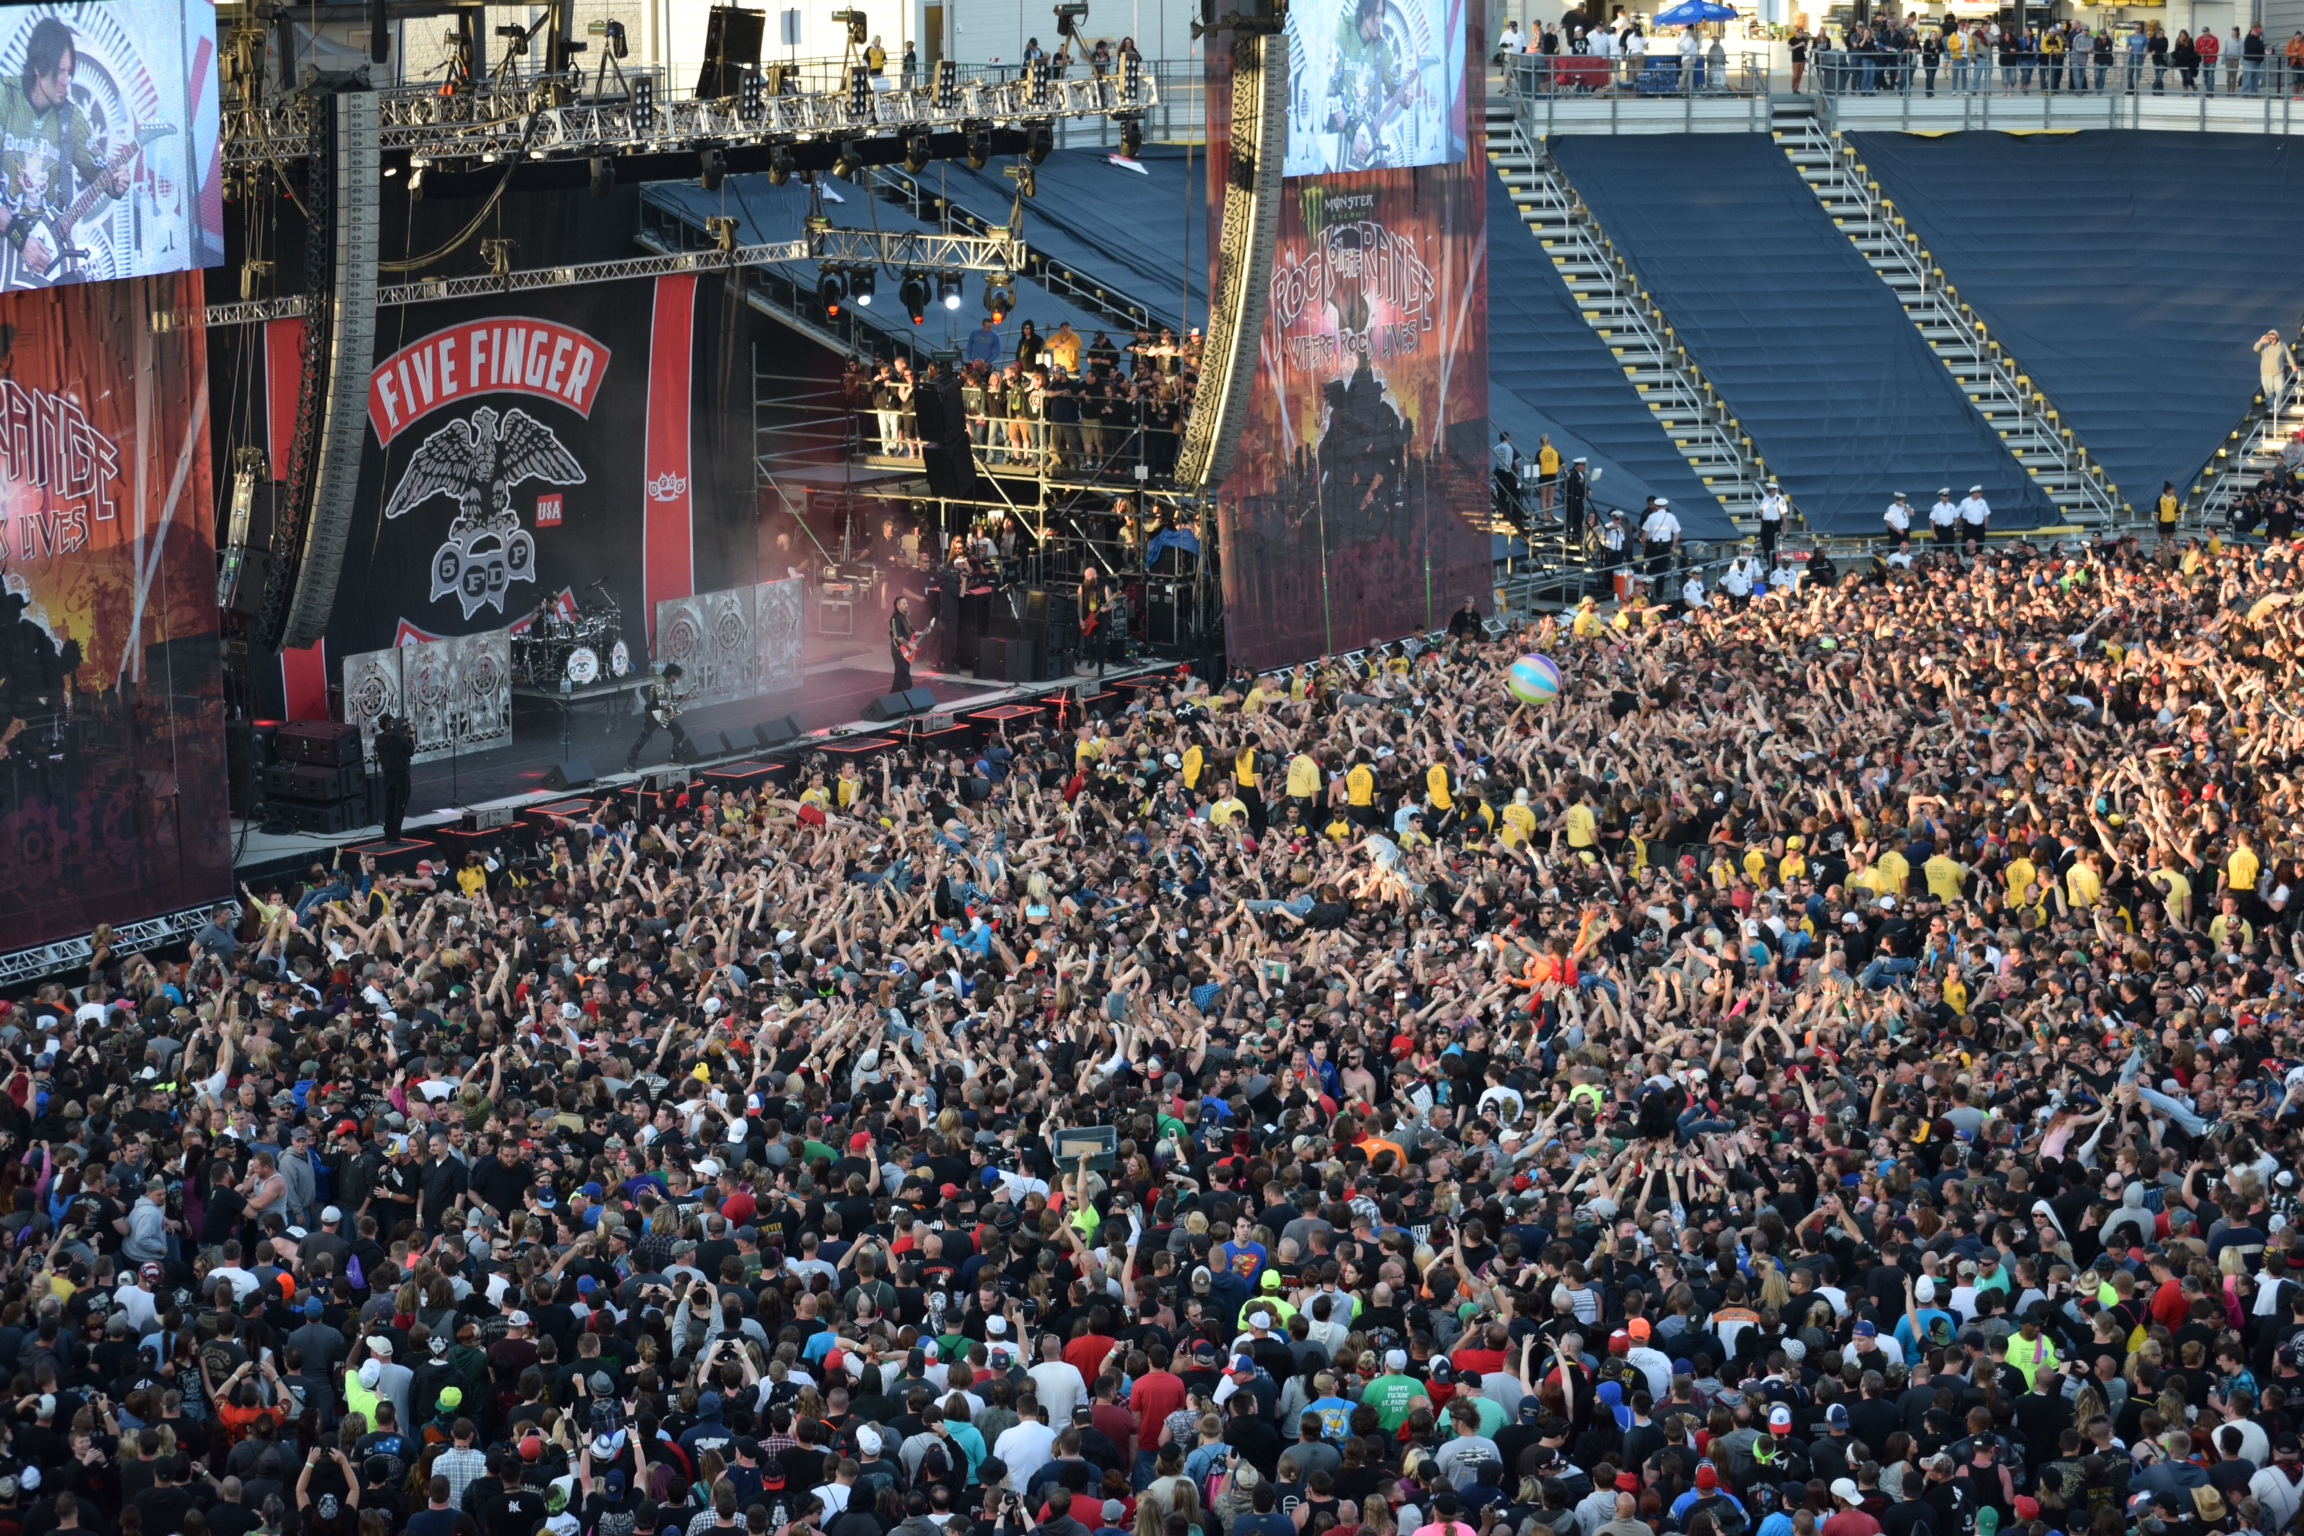 Crowd during Five Finger Death Punch